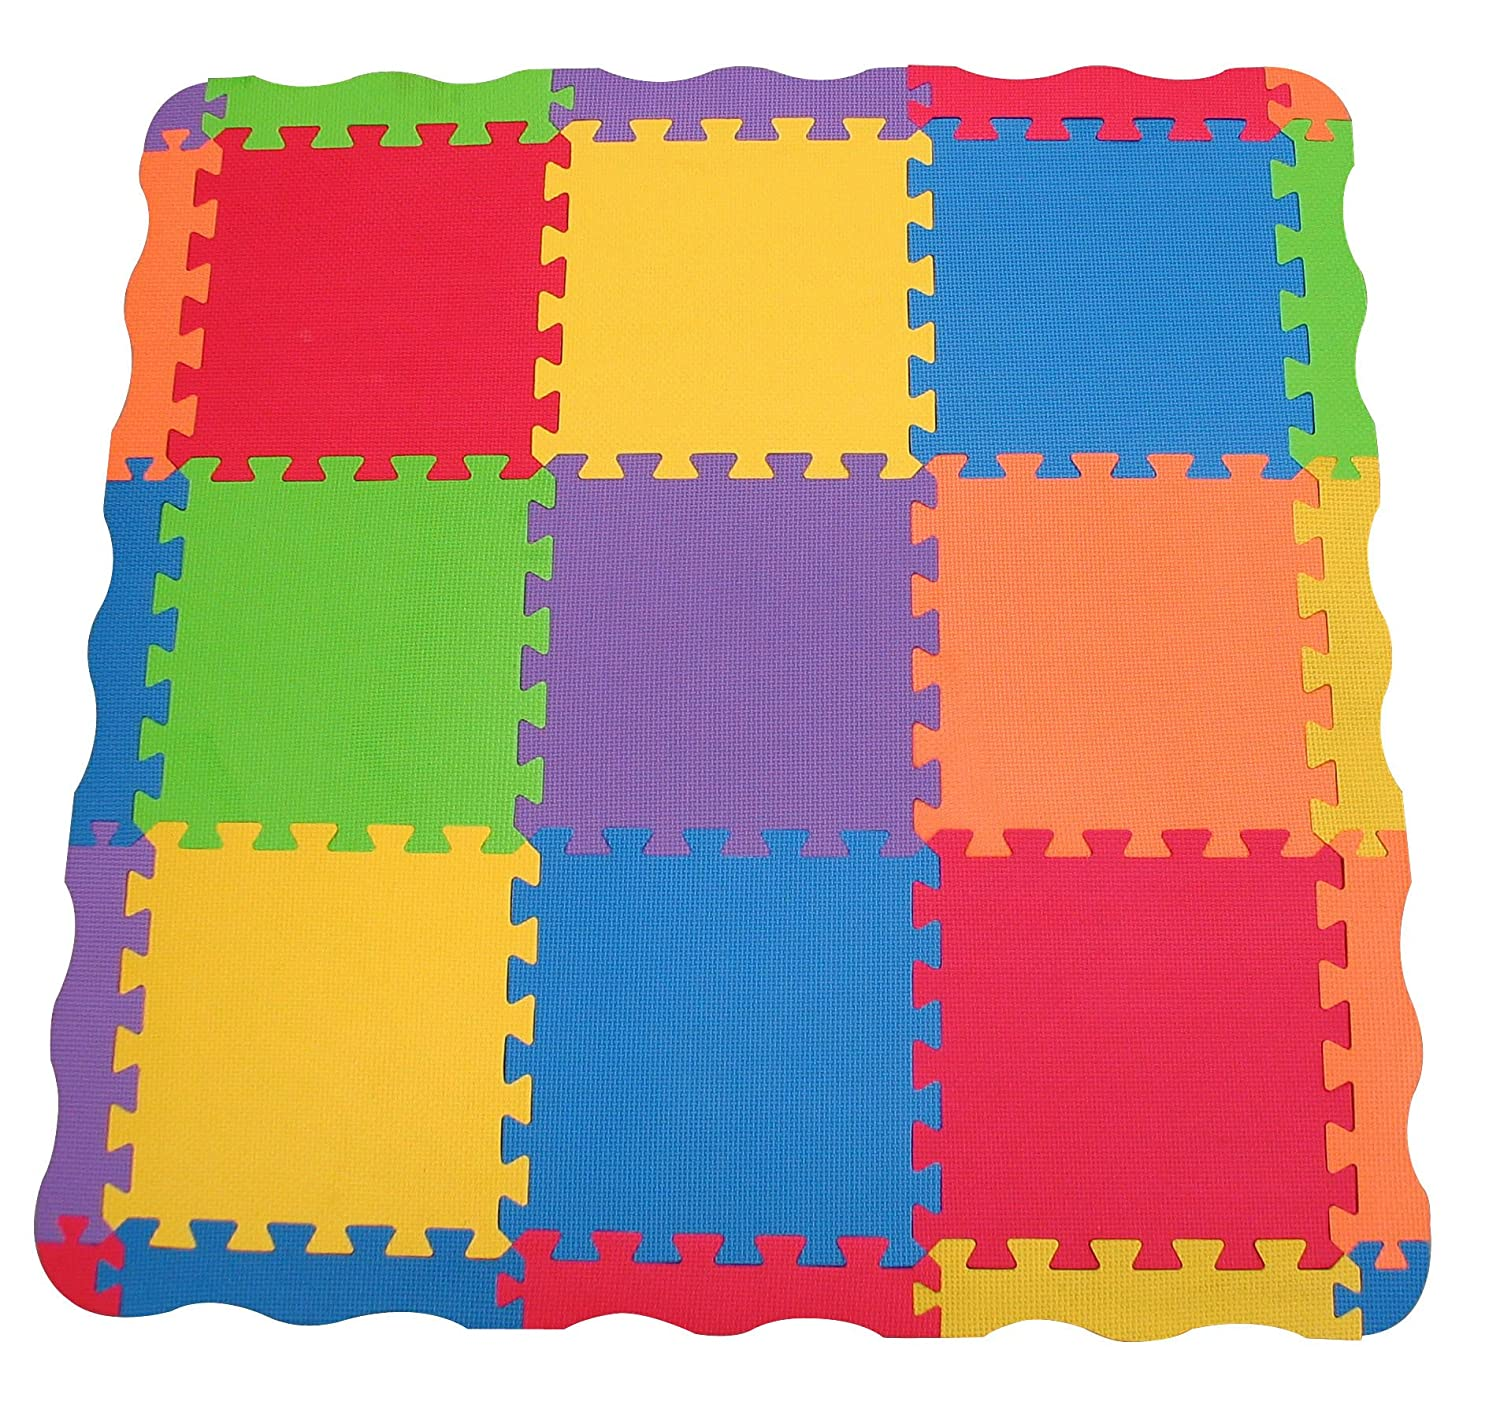 edushape tiles  piece play mat children toddler child kids  - edushape tiles  piece play mat children toddler child kids playmat babycarpet